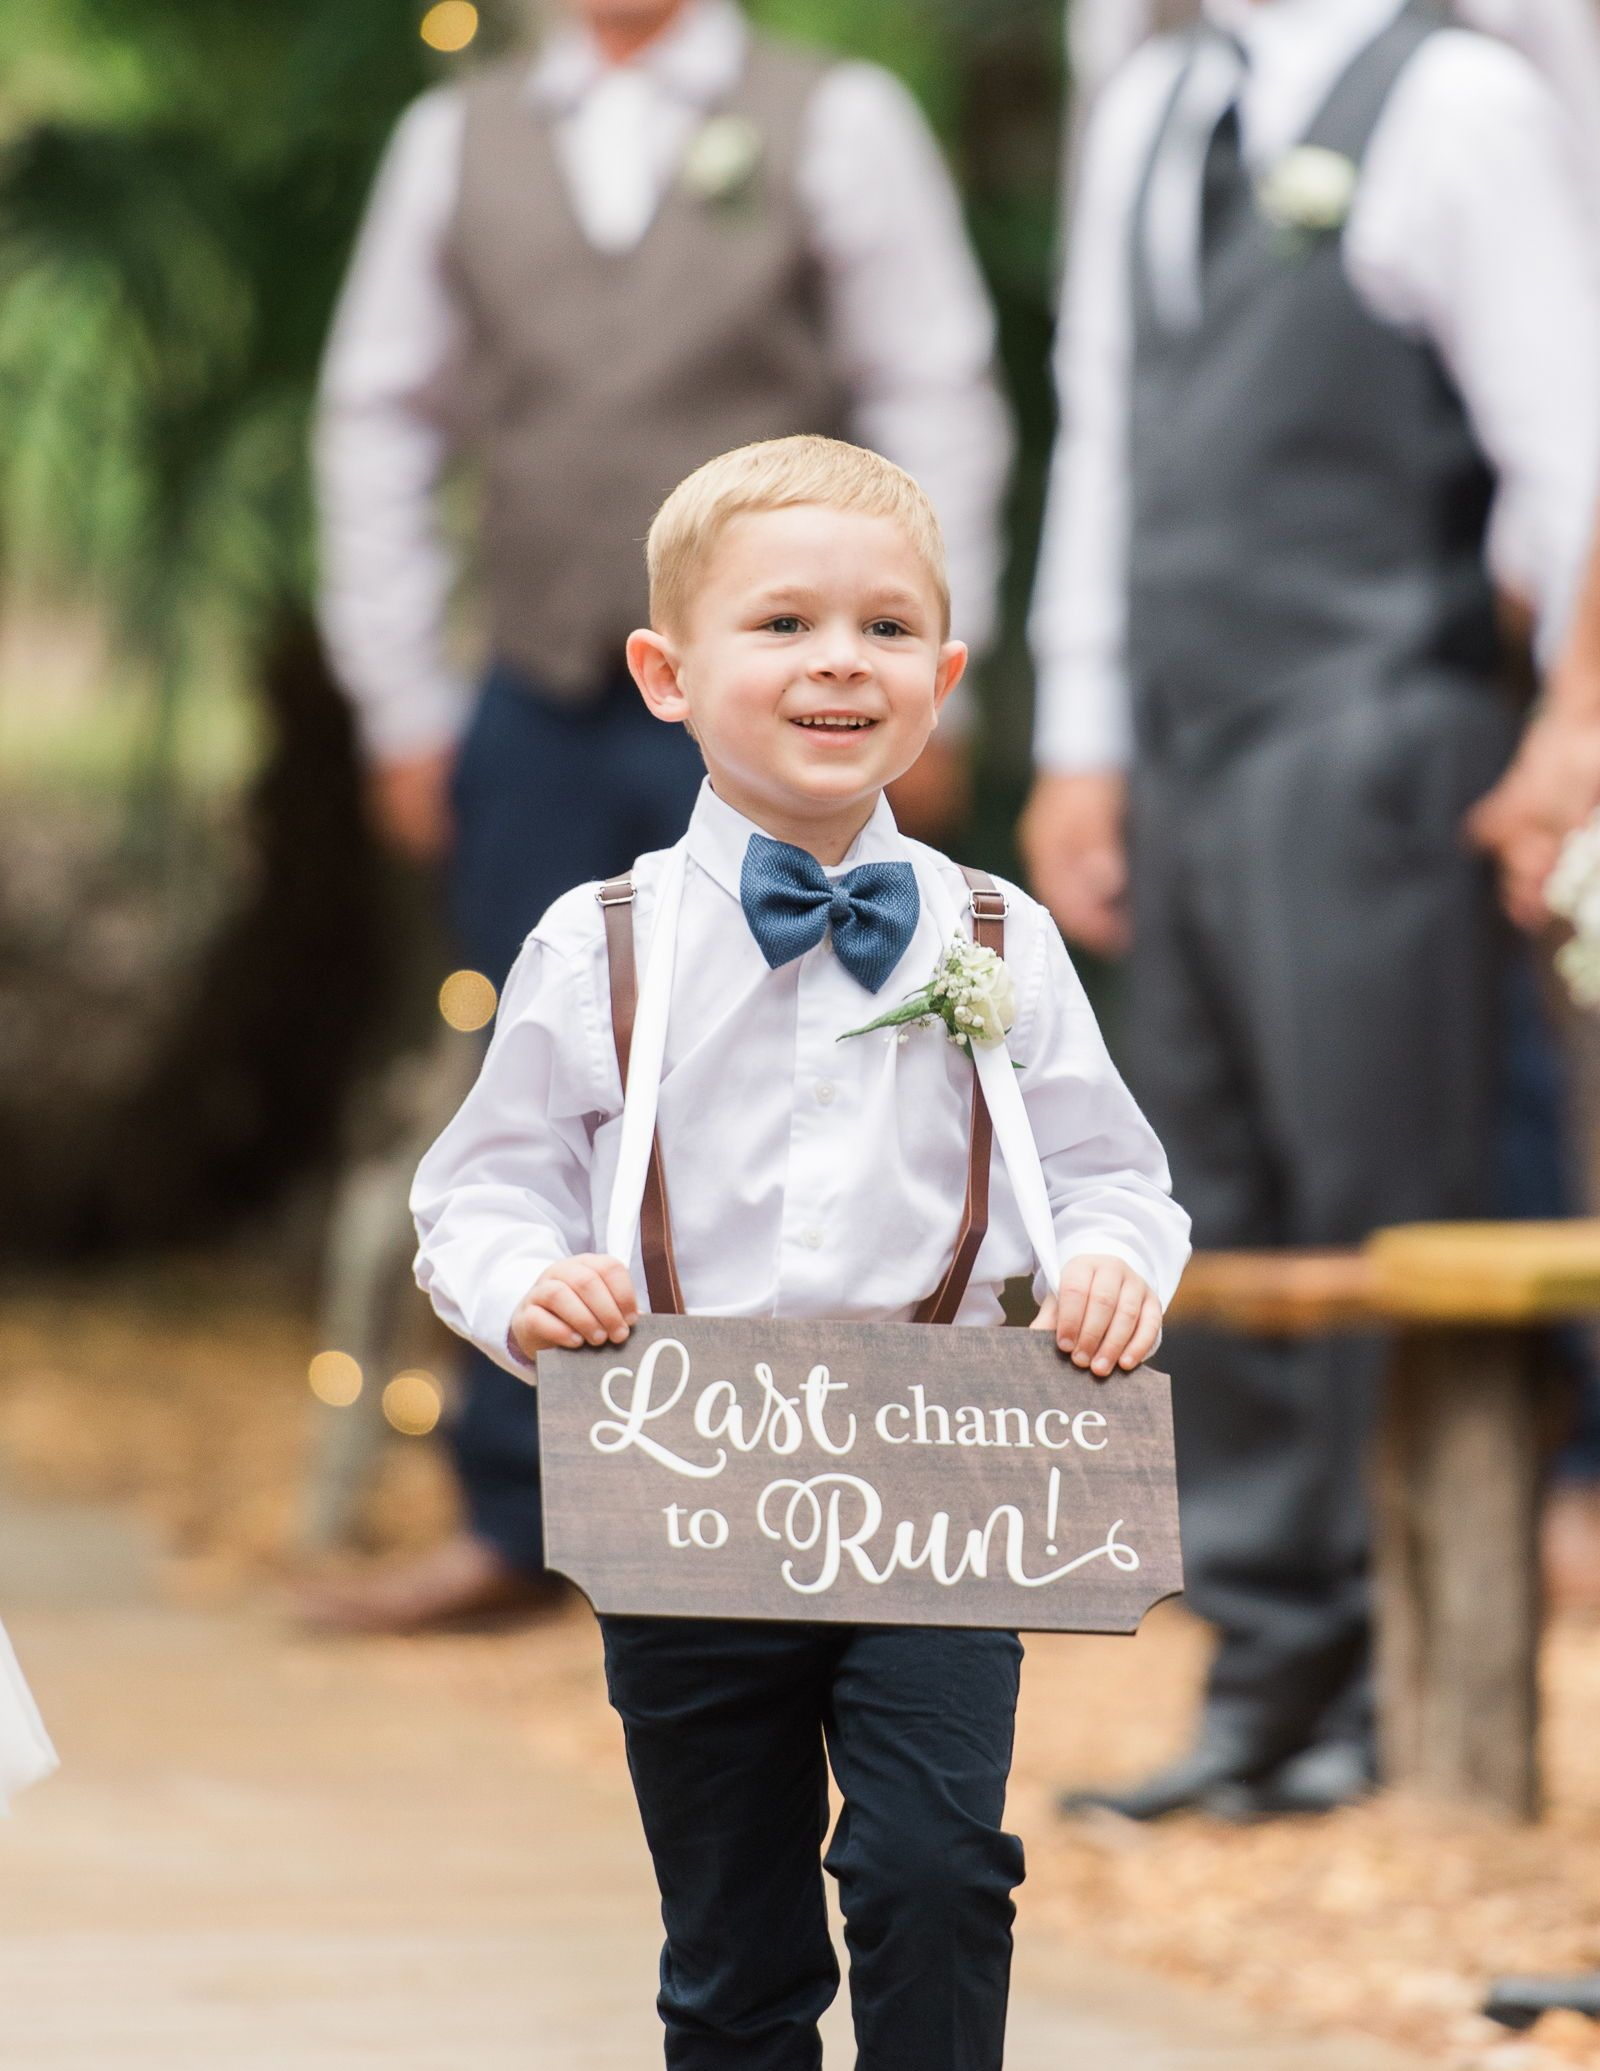 Ring Bearer Sign For Wedding Last Chance To Run Wooden Sign For Ceremony Decorations Wooden Rustic Chic Item Wlc240 Ring Bearer Wedding Wedding Ceremony Wedding Photo Props